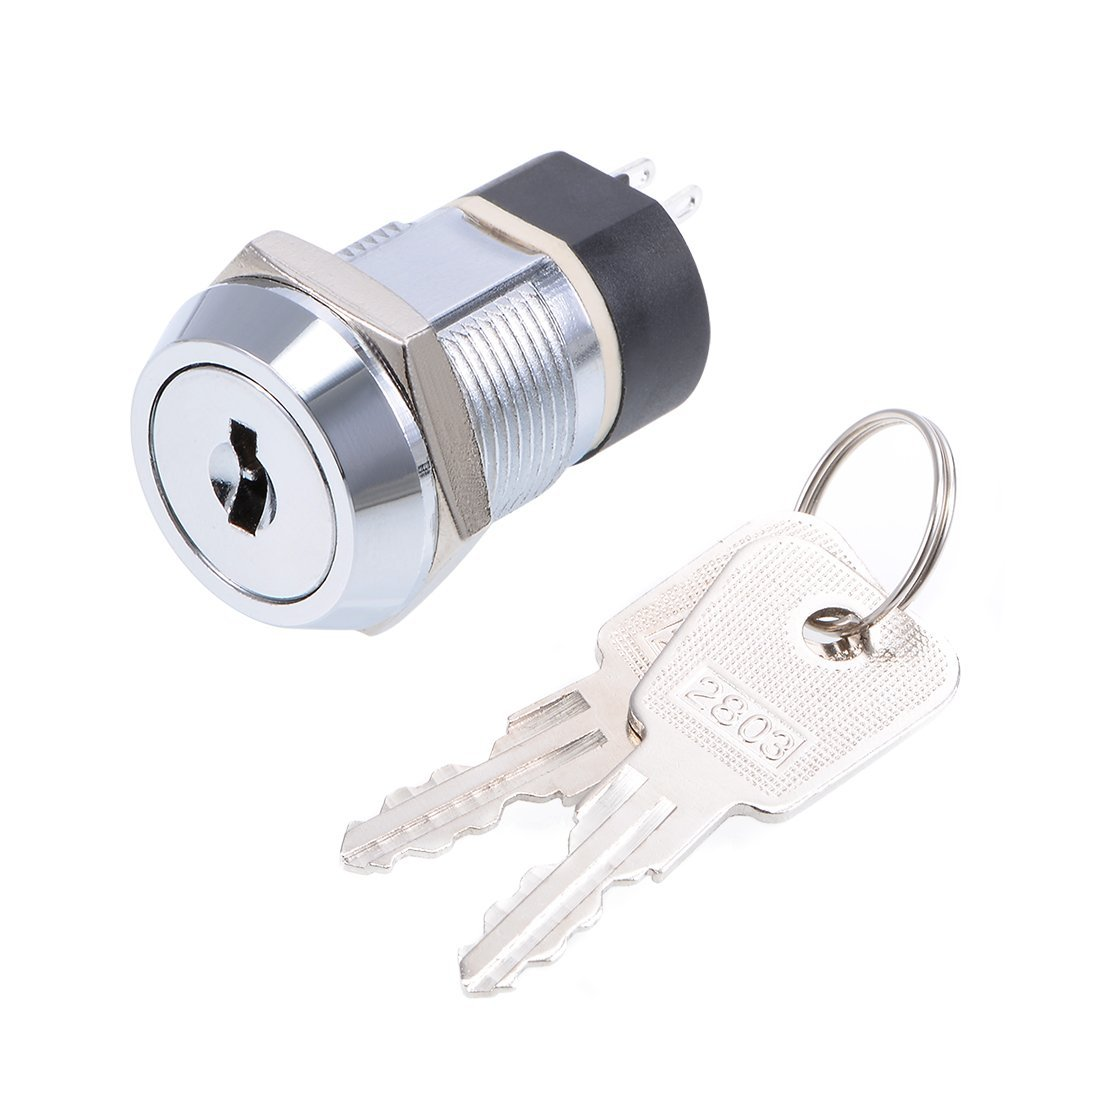 uxcell 19mm 2 Positions New popularity 2NO 2NC Button Electric Push Swi Industry No. 1 Keylock